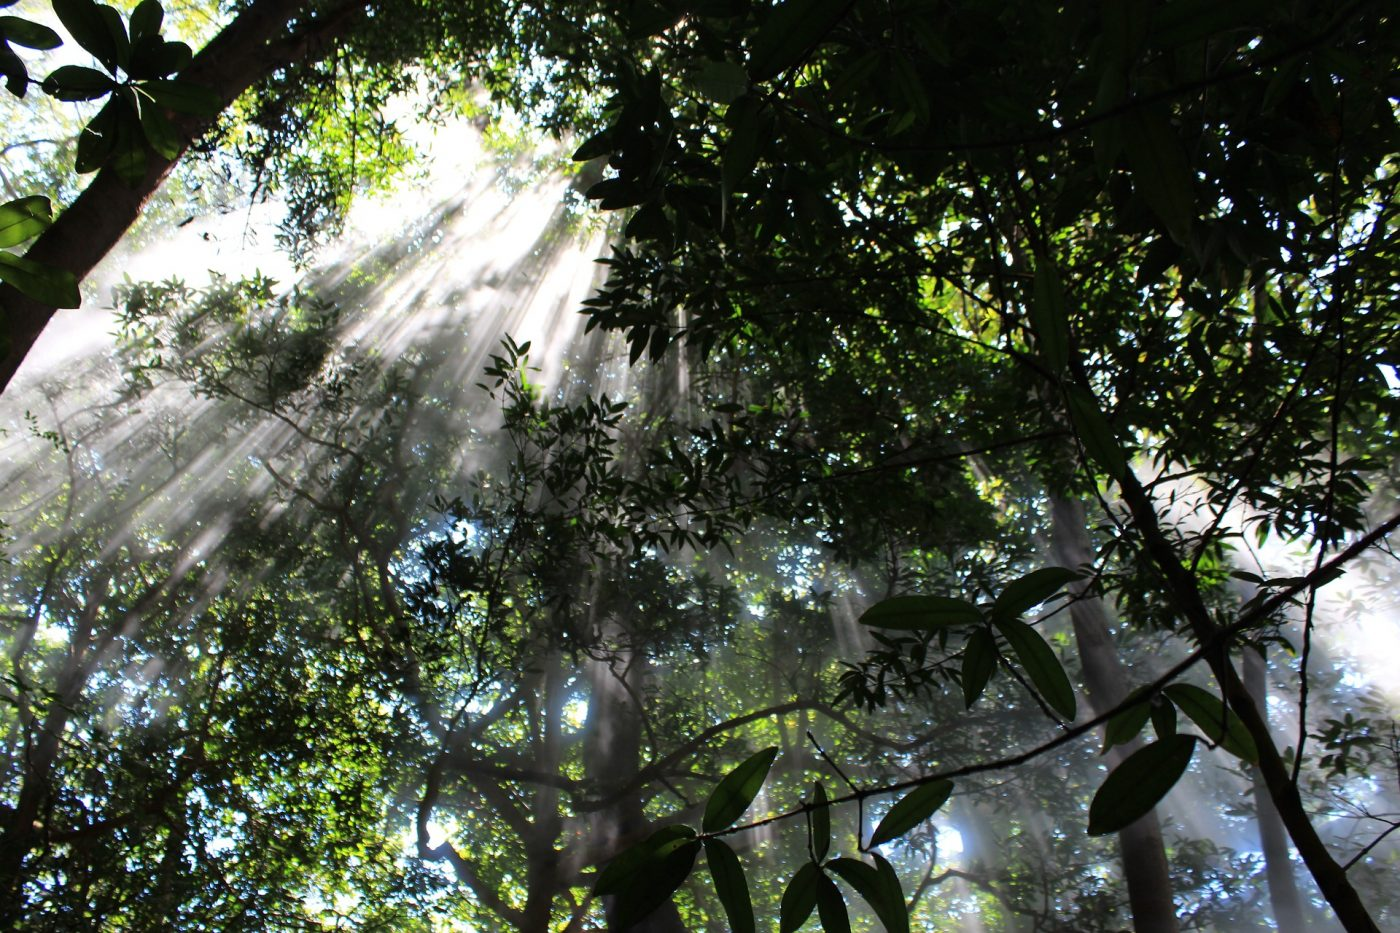 Monteverde Cloud Forest: Sun peaking through the trees in the cloud forest